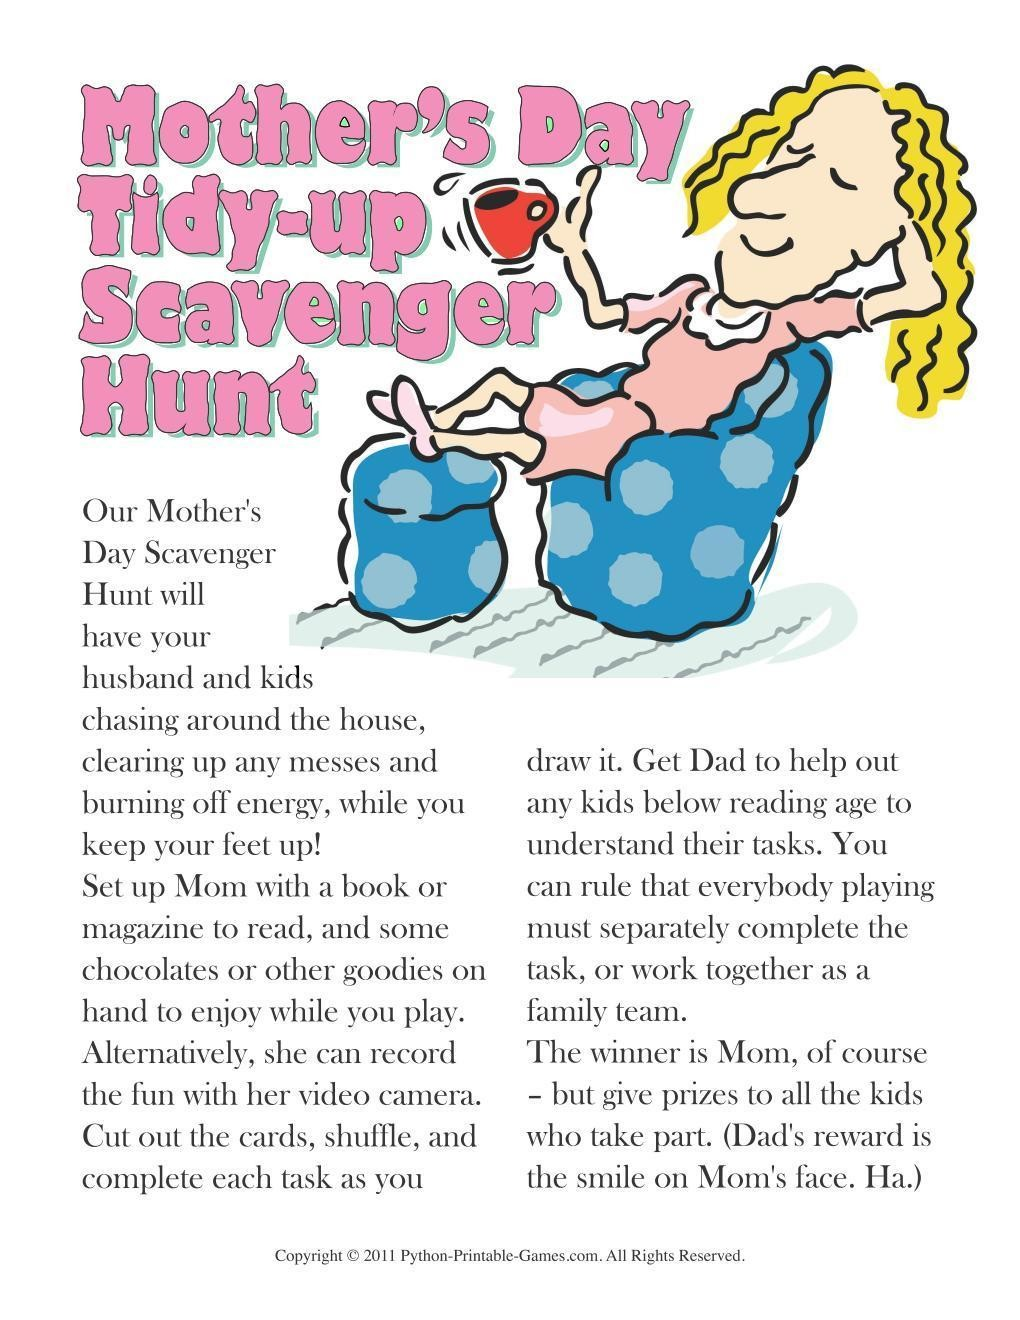 Mother's Day: Tidy Up Scavenger Hunt